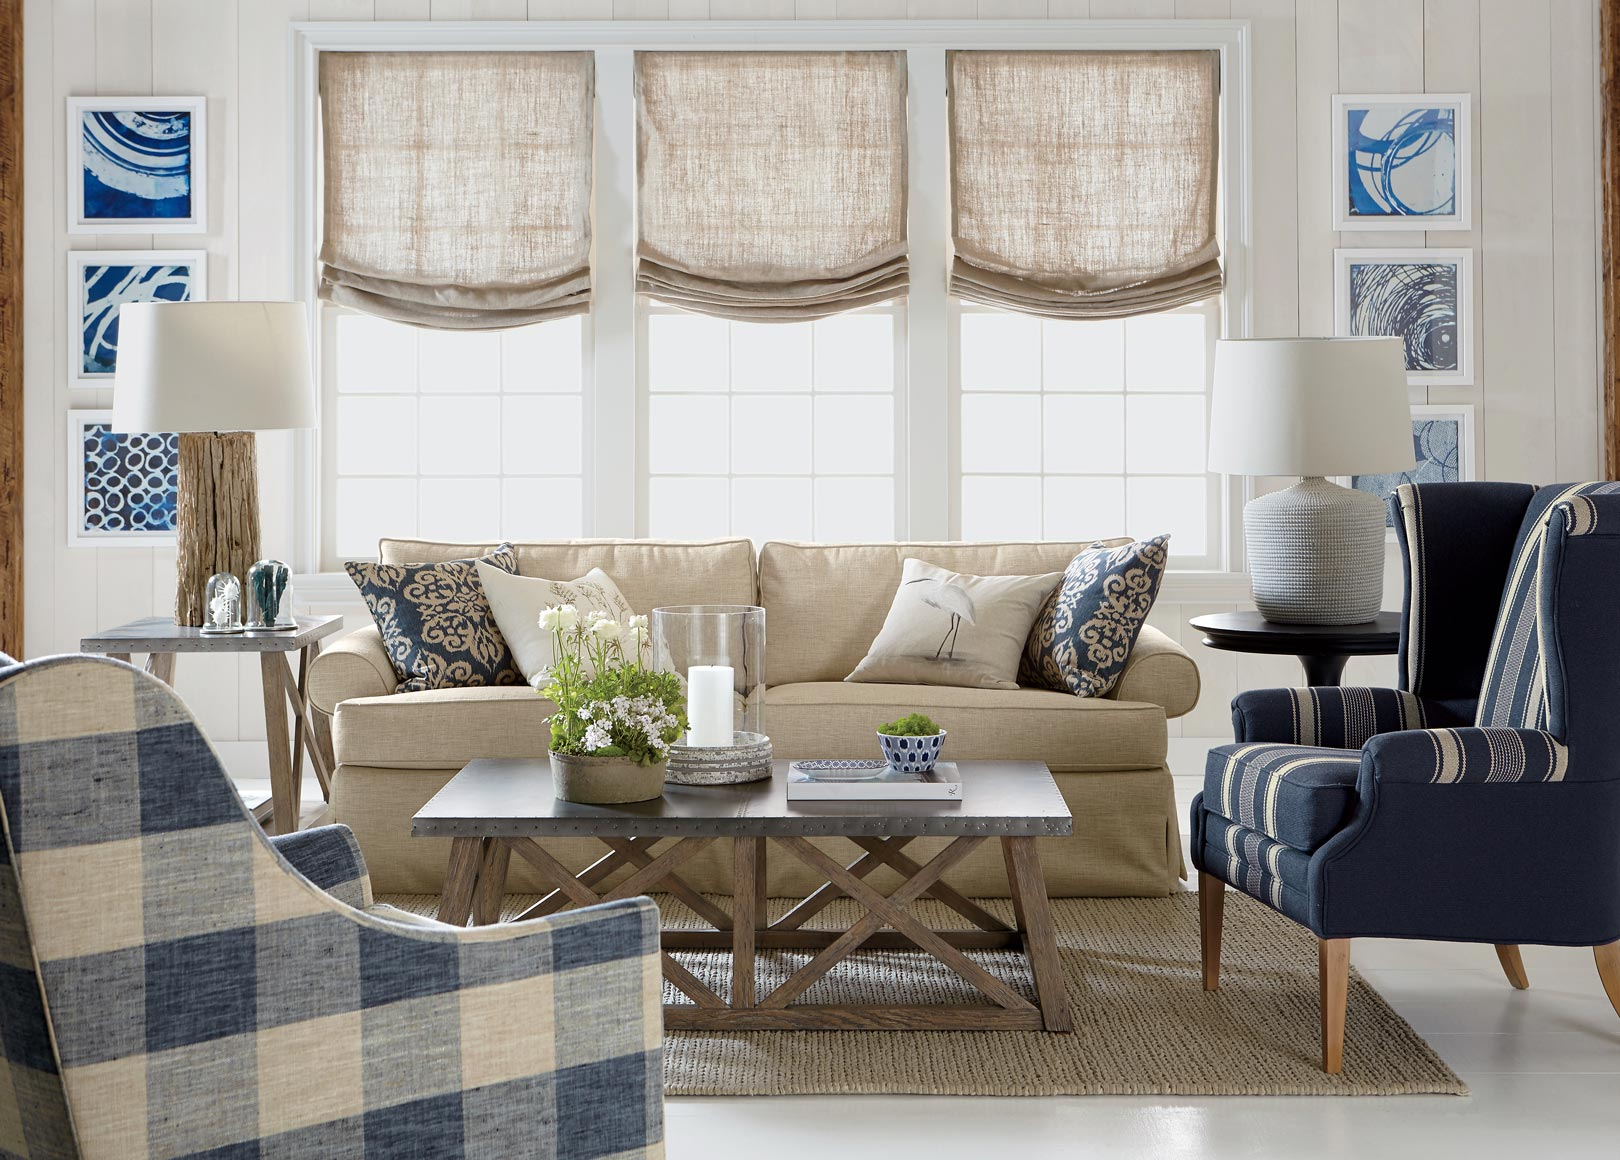 Modern Comfort Zone Living Room | Ethan Allen | Ethan Allen pertaining to Ethan Allen Living Room